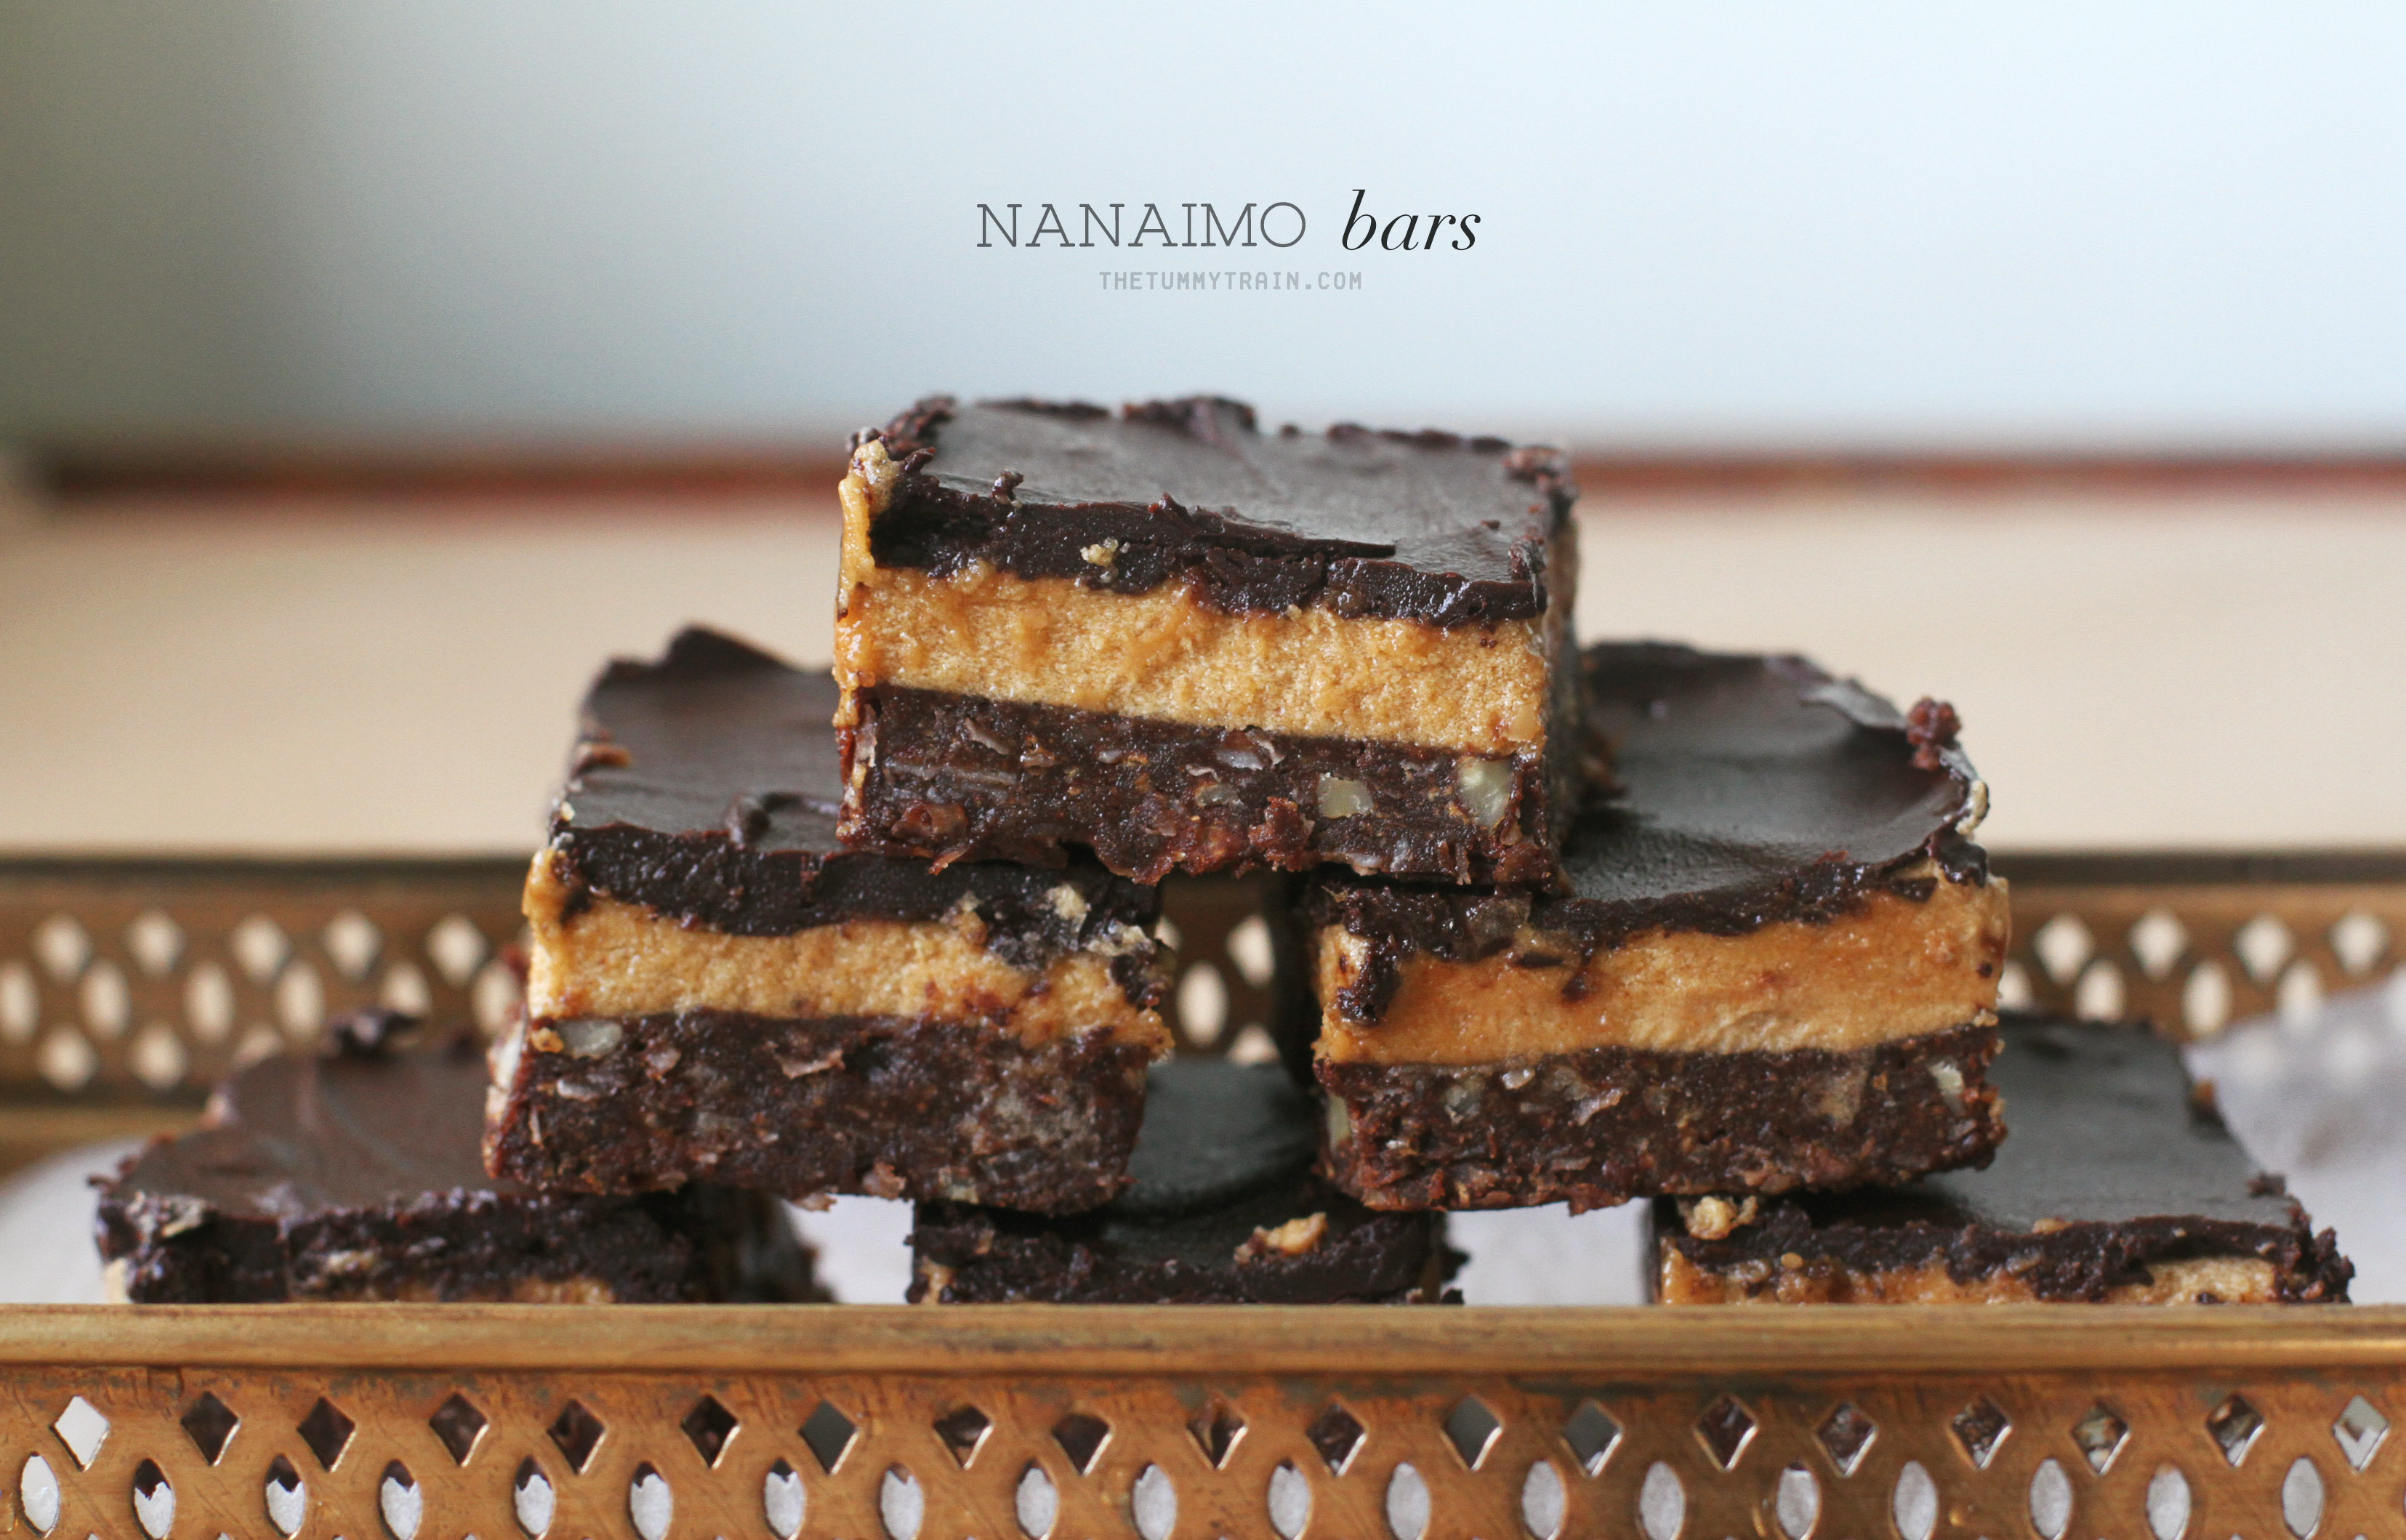 Nanaimo Bars 1 - That thing Canadians call Nanaimo Bars